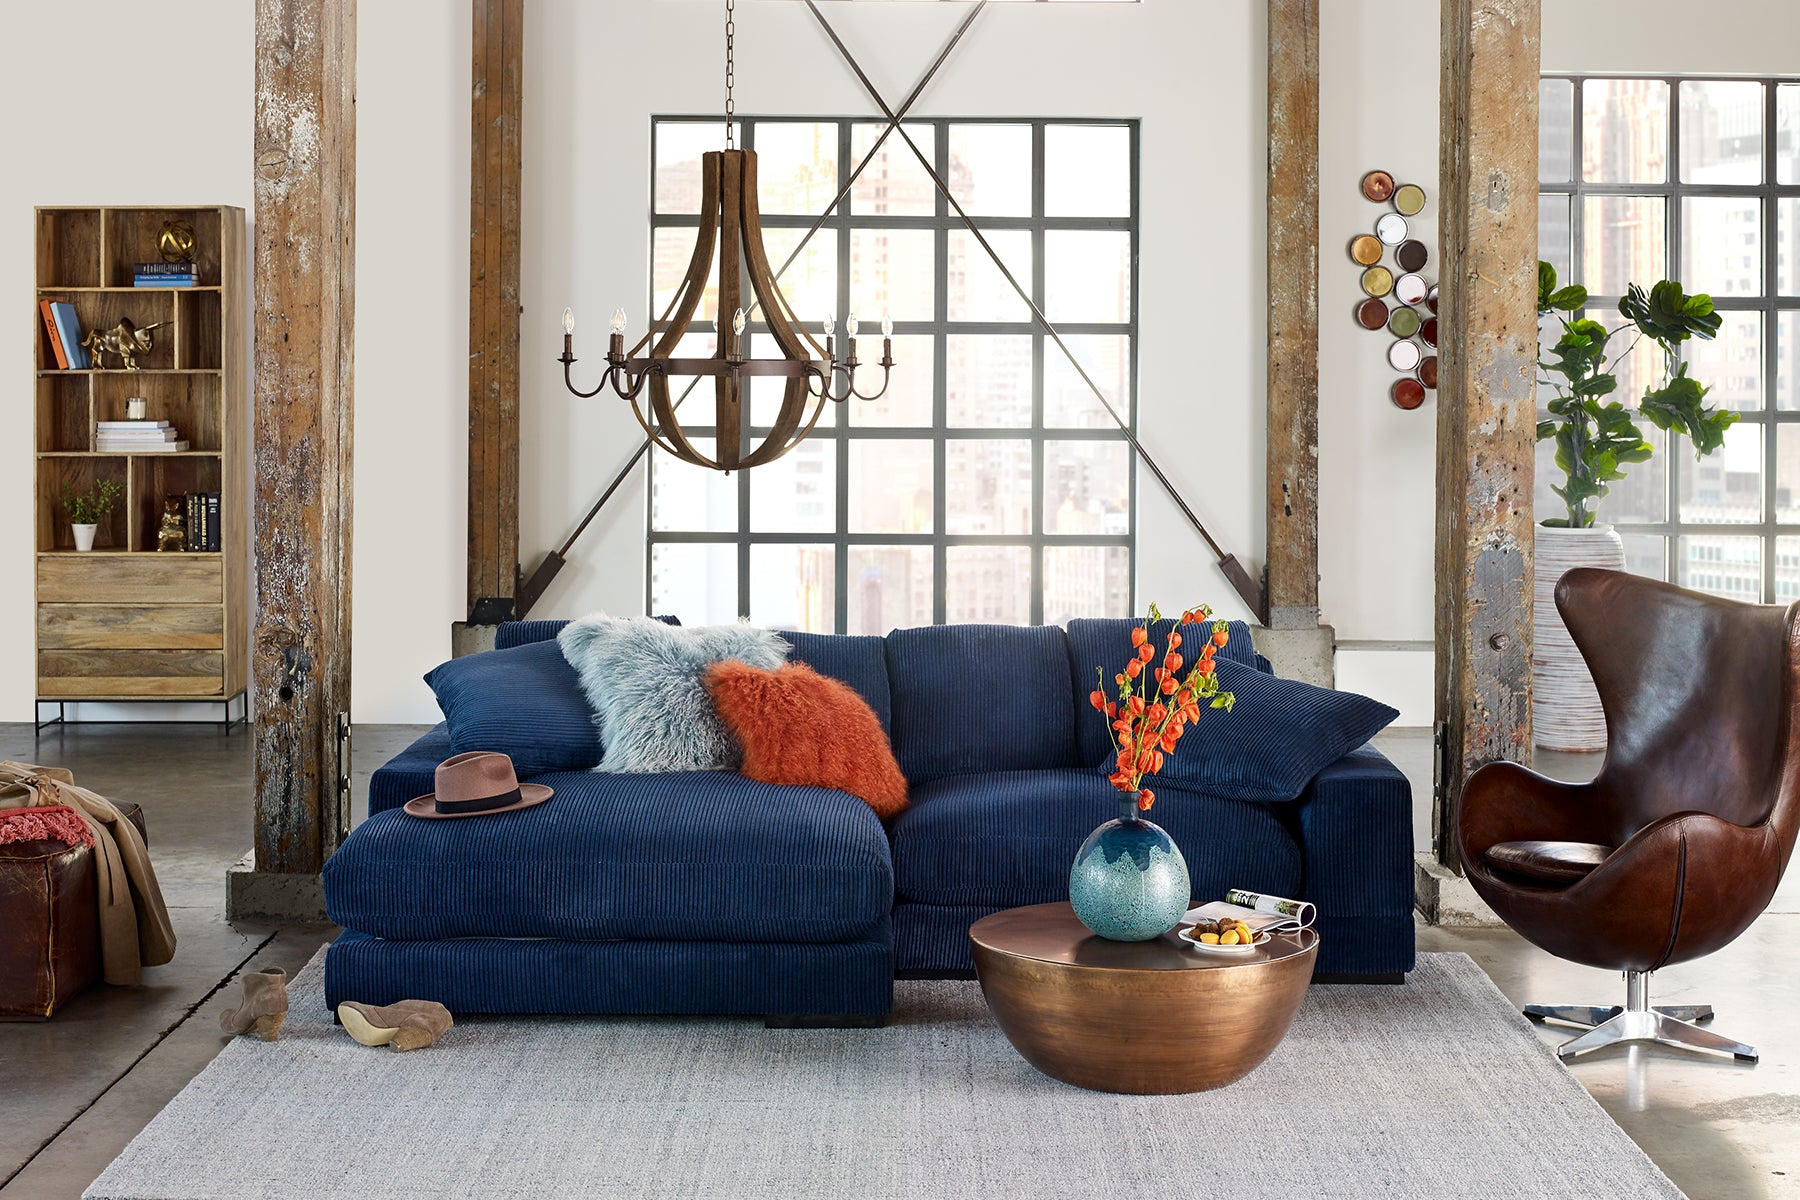 Moe's Plunge Sectional with orange and blue pillows